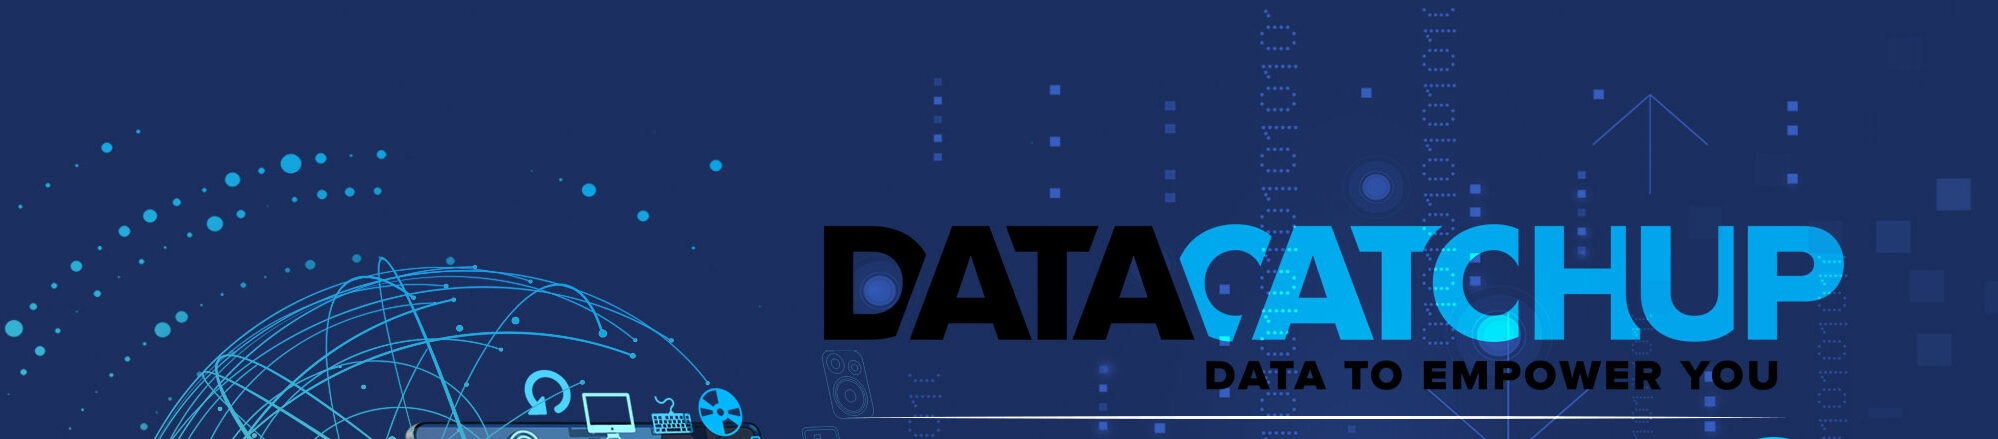 Data Catchup